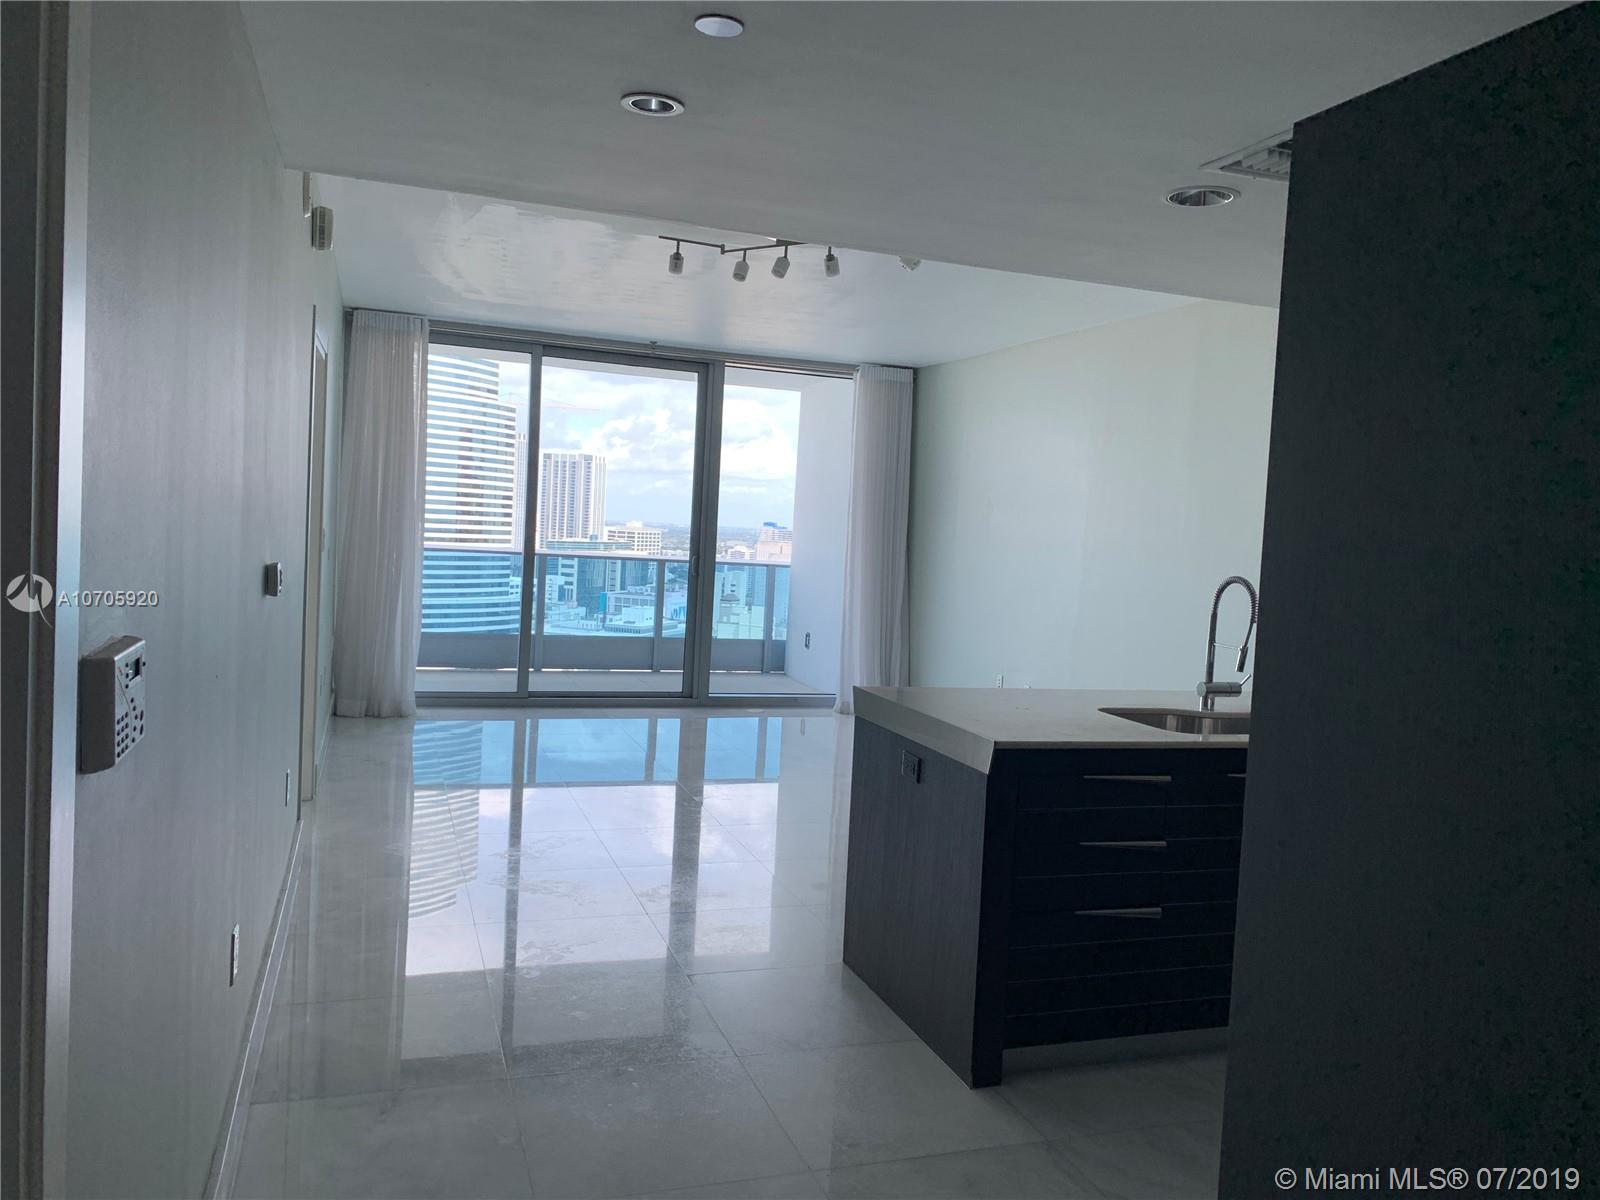 200  Biscayne blvd way #3114 For Sale A10705920, FL